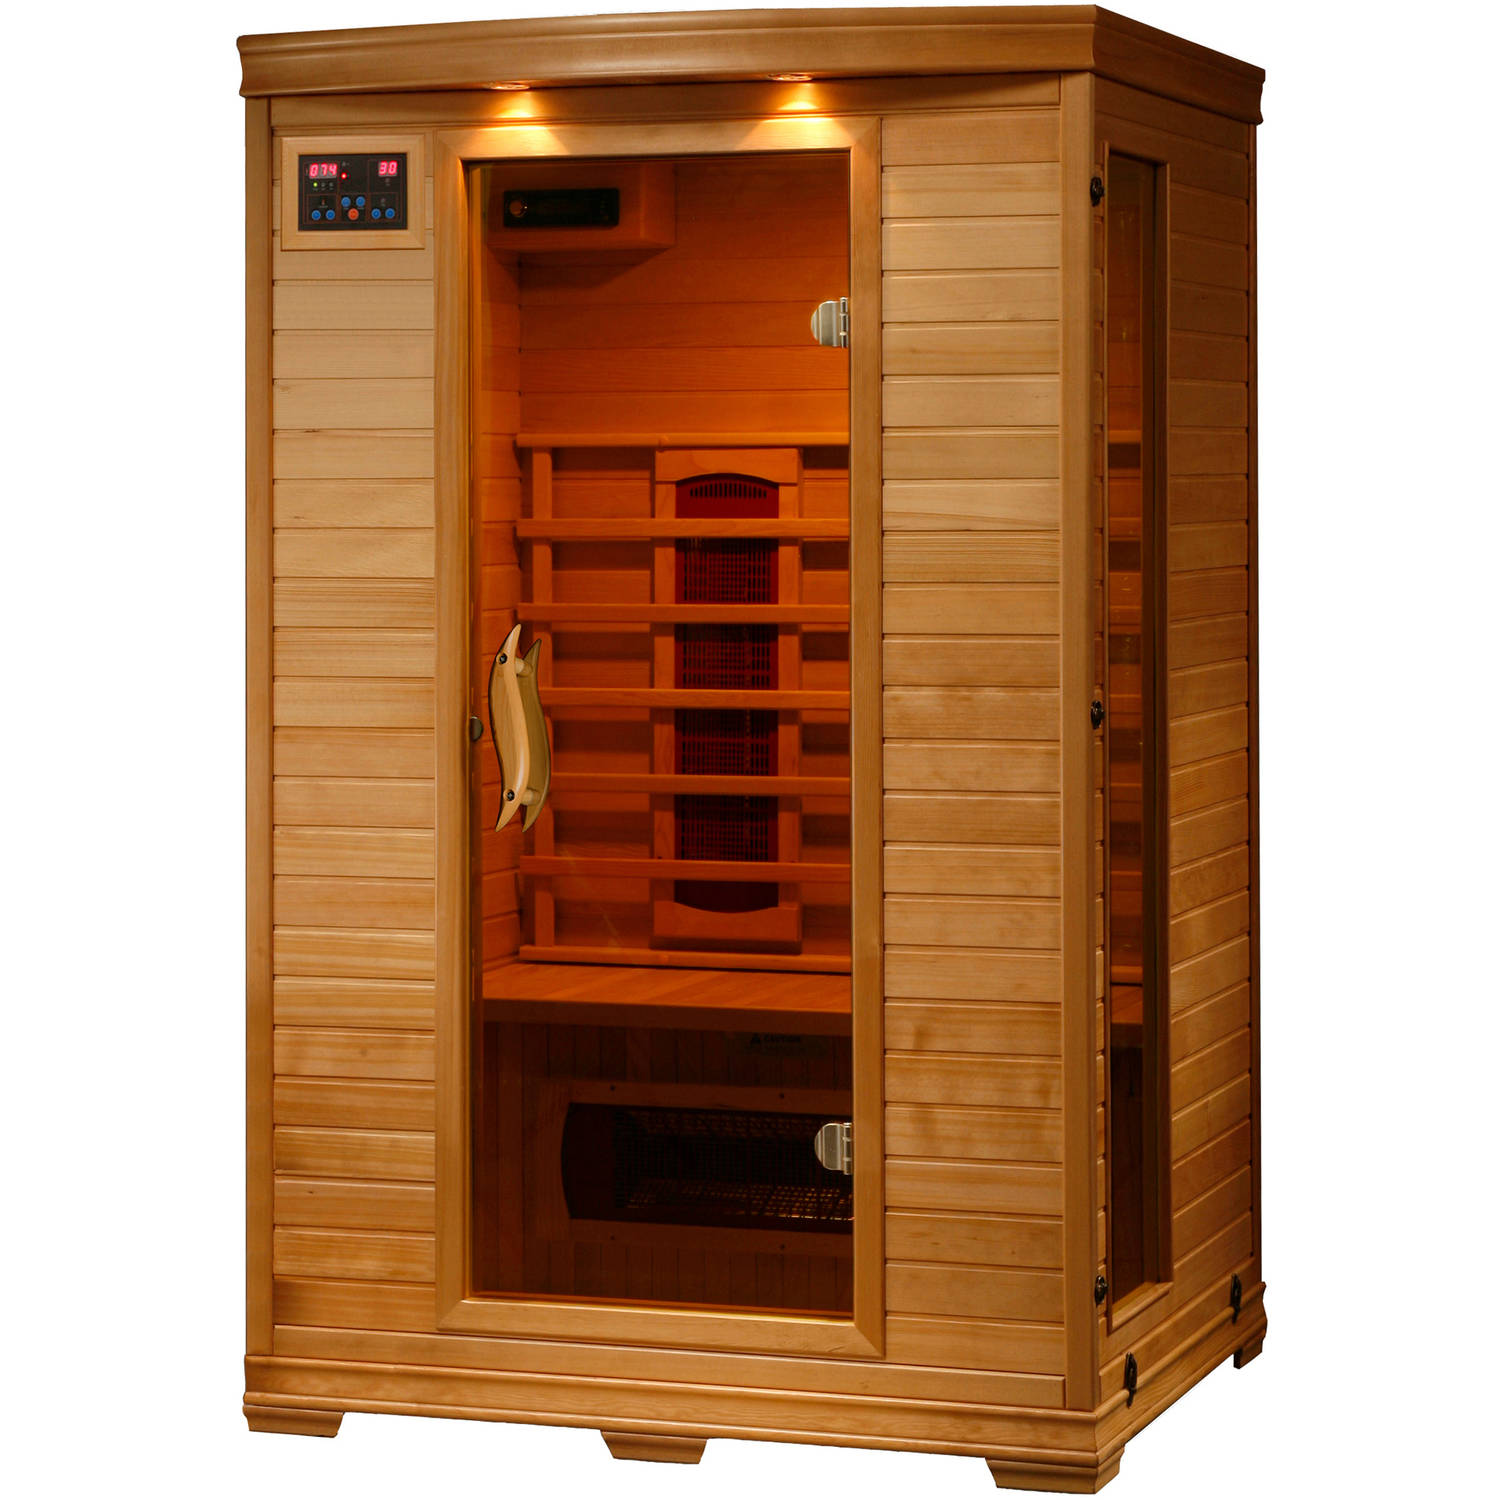 Radiant Saunas 2-Person Hemlock Deluxe Infrared Sauna with 5 Ceramic Heaters